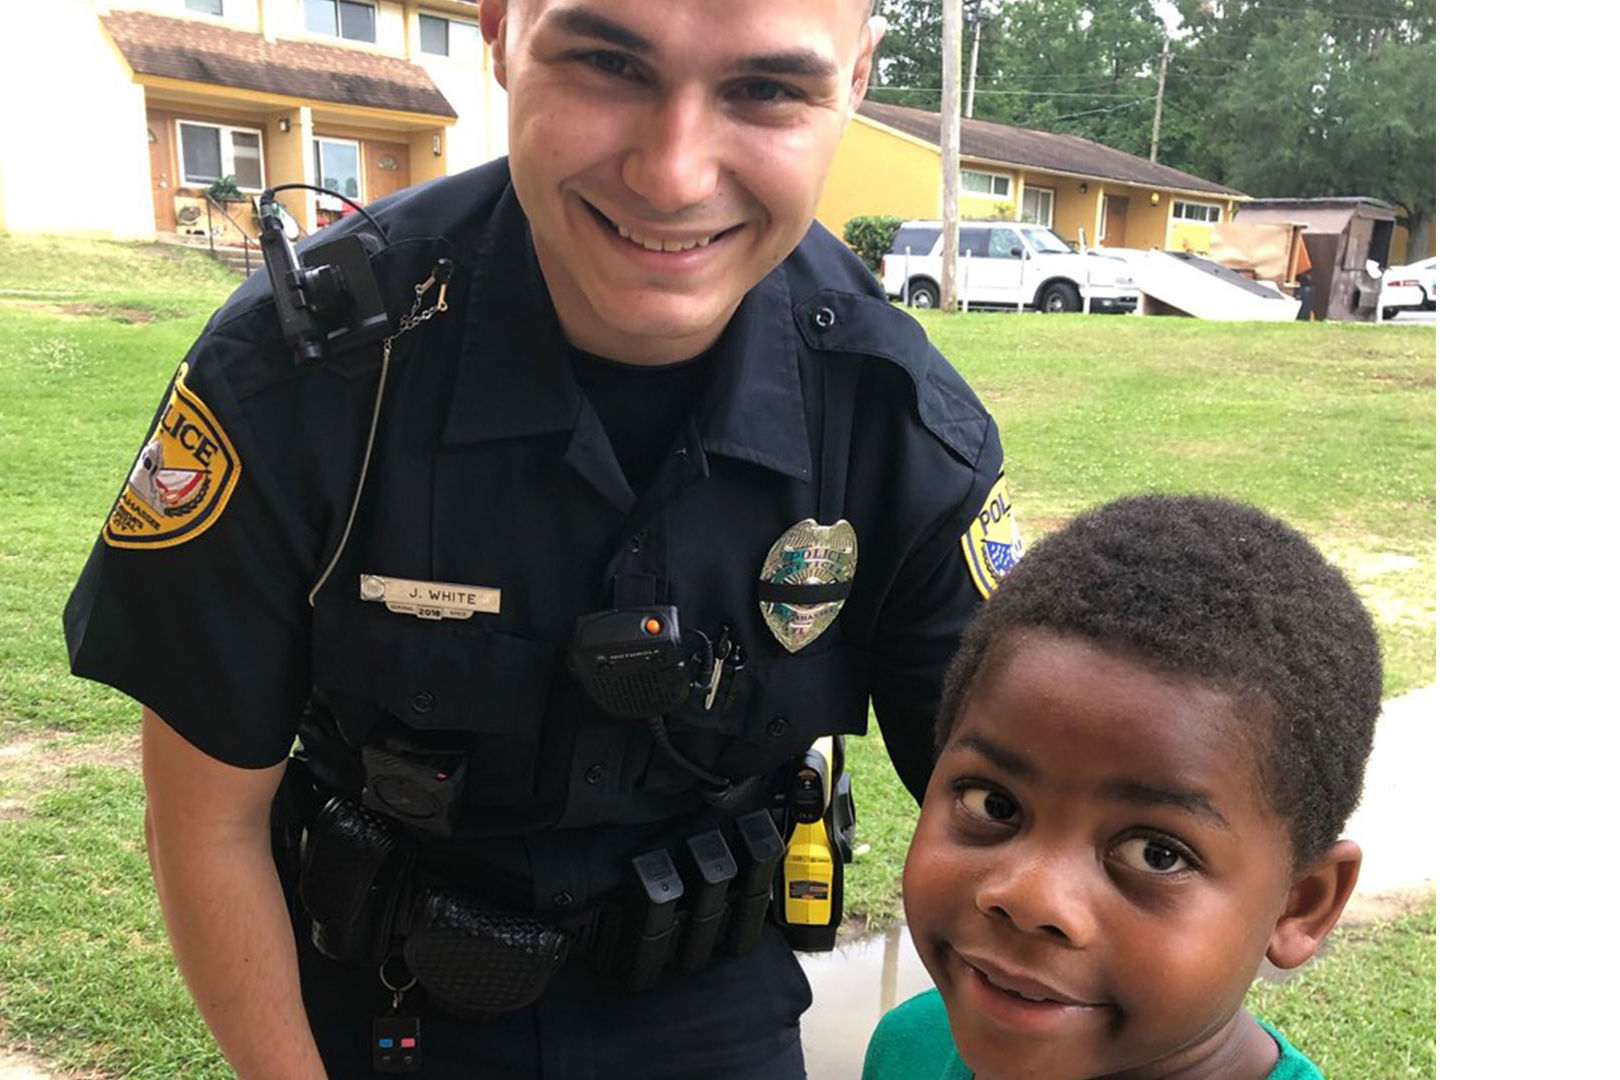 WATCH: Lonely Florida Boy Calls 911, Finds New Friend in Police Officer